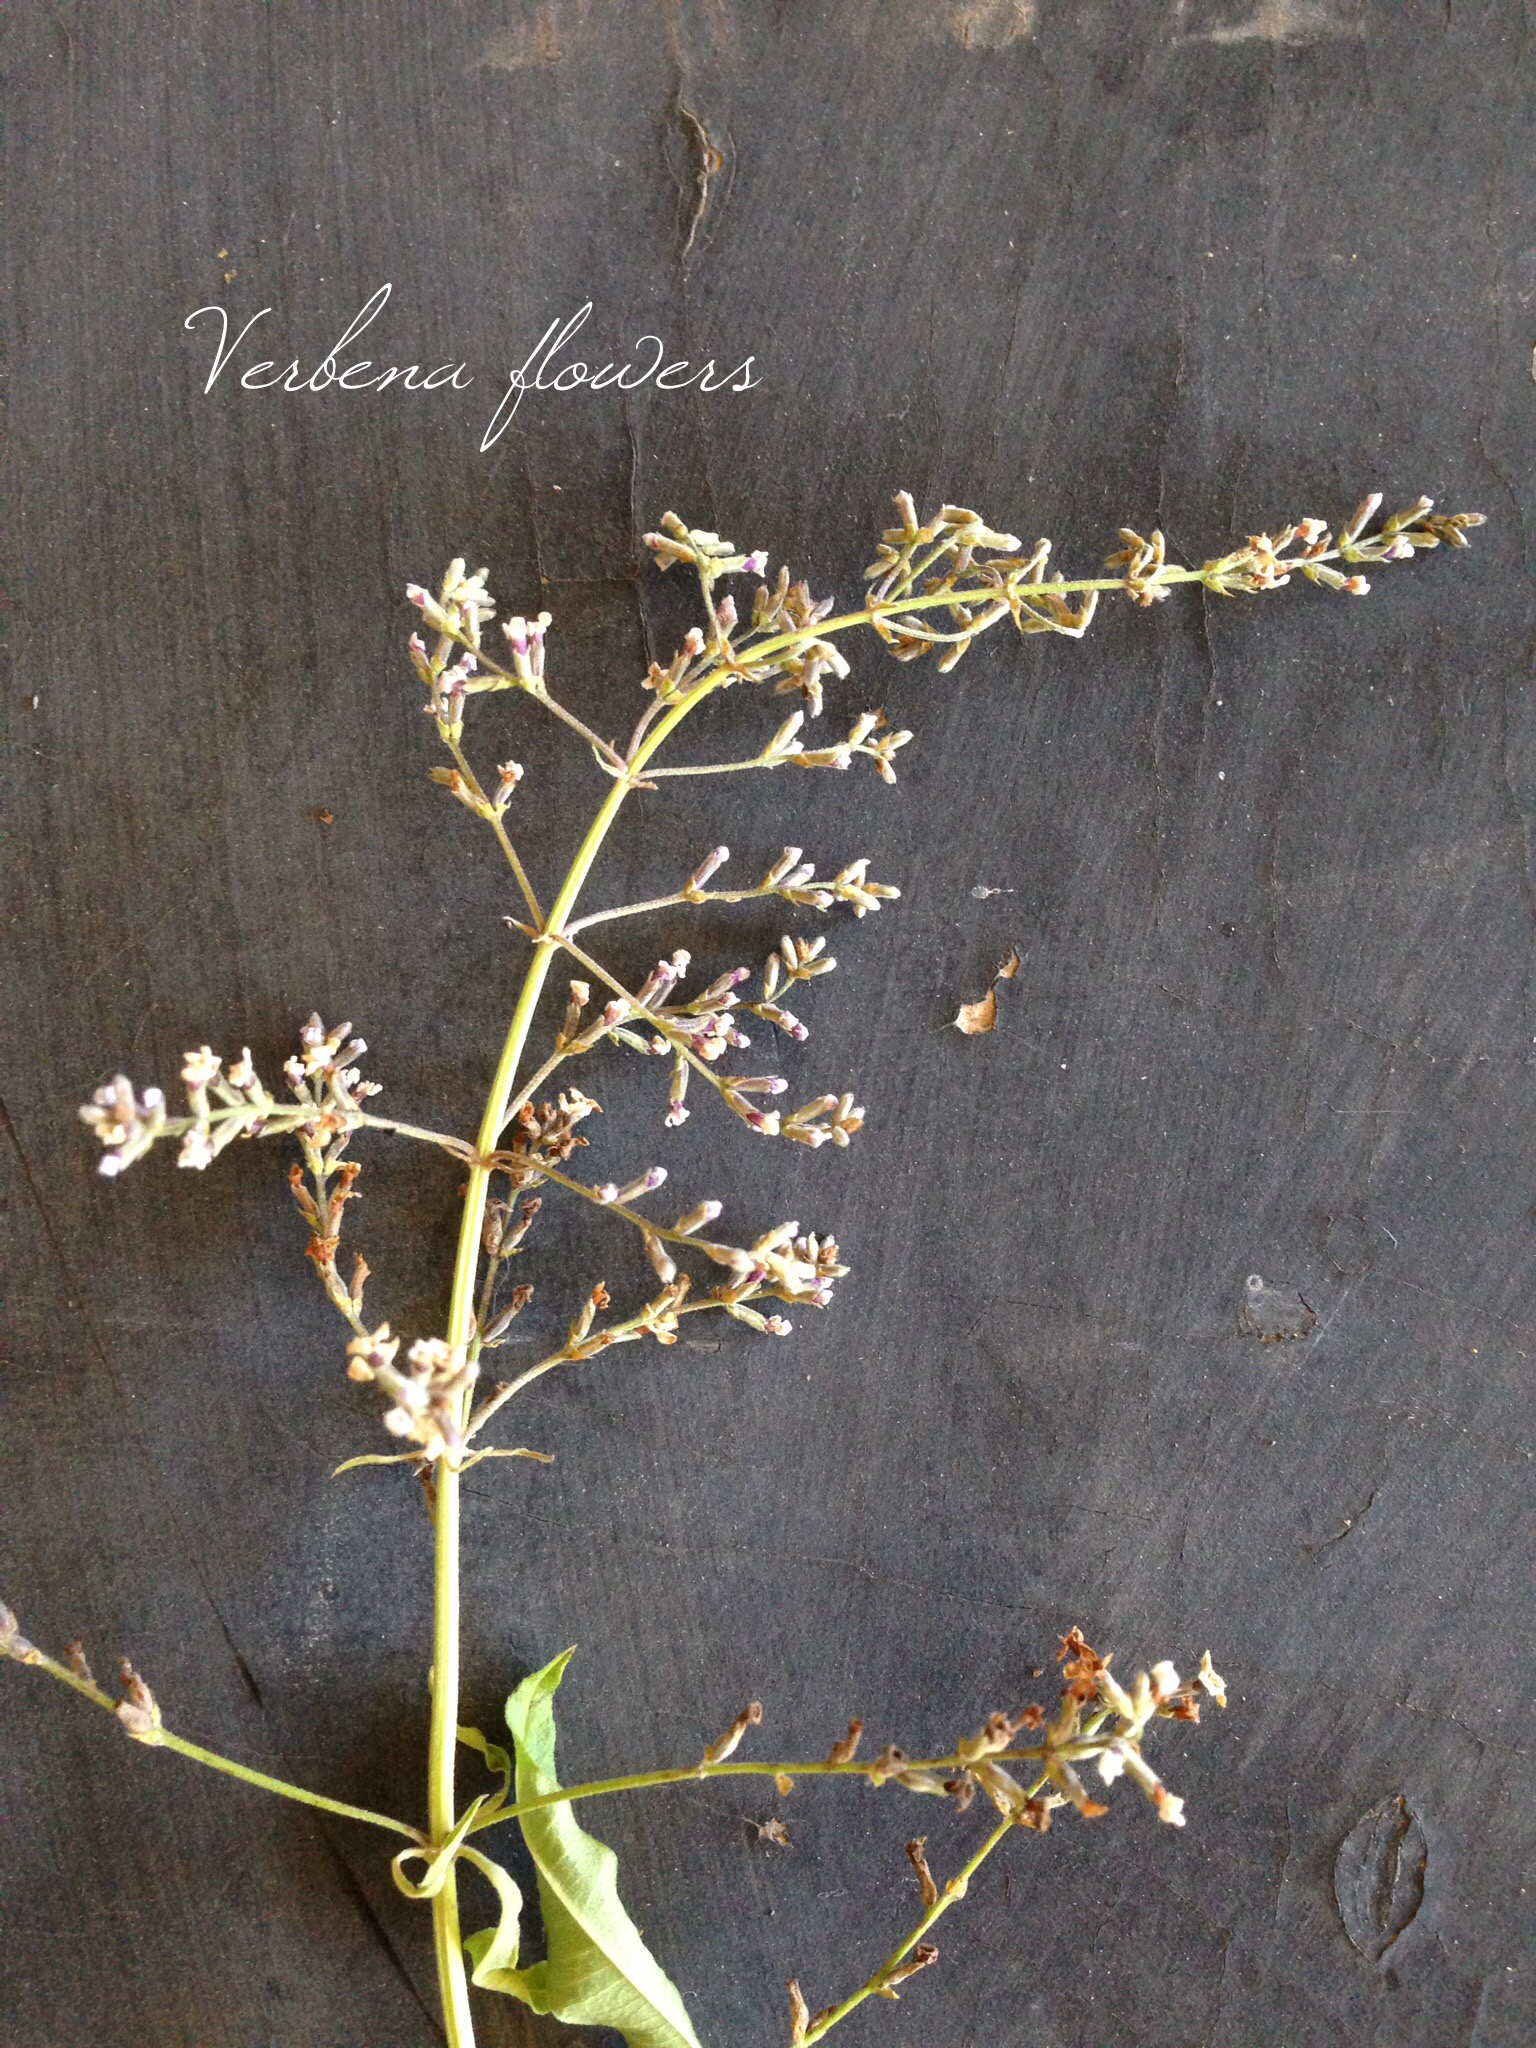 © Lisa Golden Schroeder. Use verbena blossoms to scent cream or a simple syrup to use in unique cocktails.